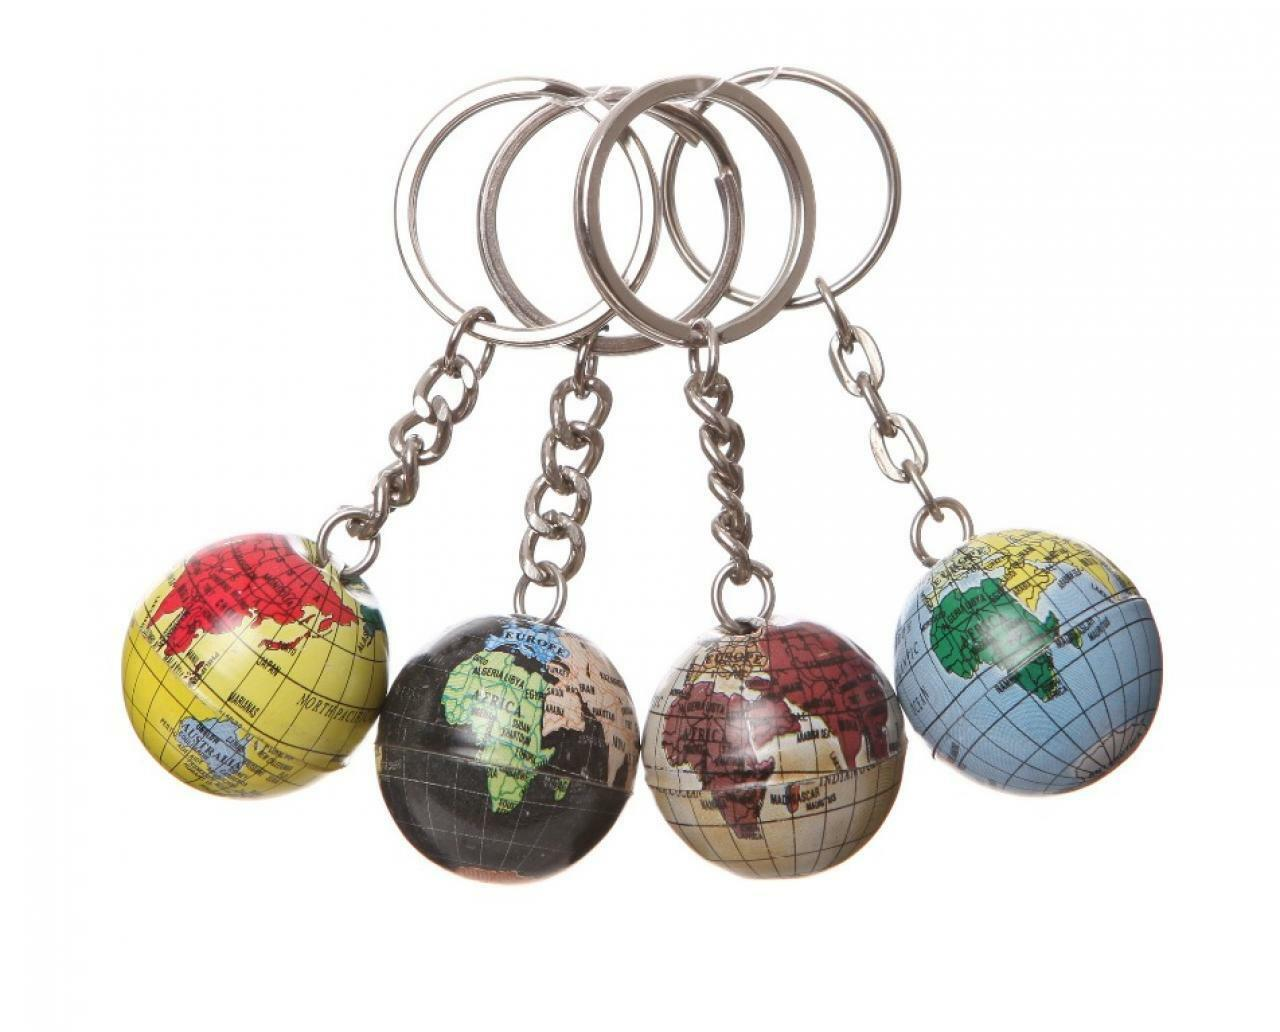 S4 mini world globe map of the earth atlas geography vintage s4 mini world globe map of the earth atlas geography vintage keyrings mens gift gumiabroncs